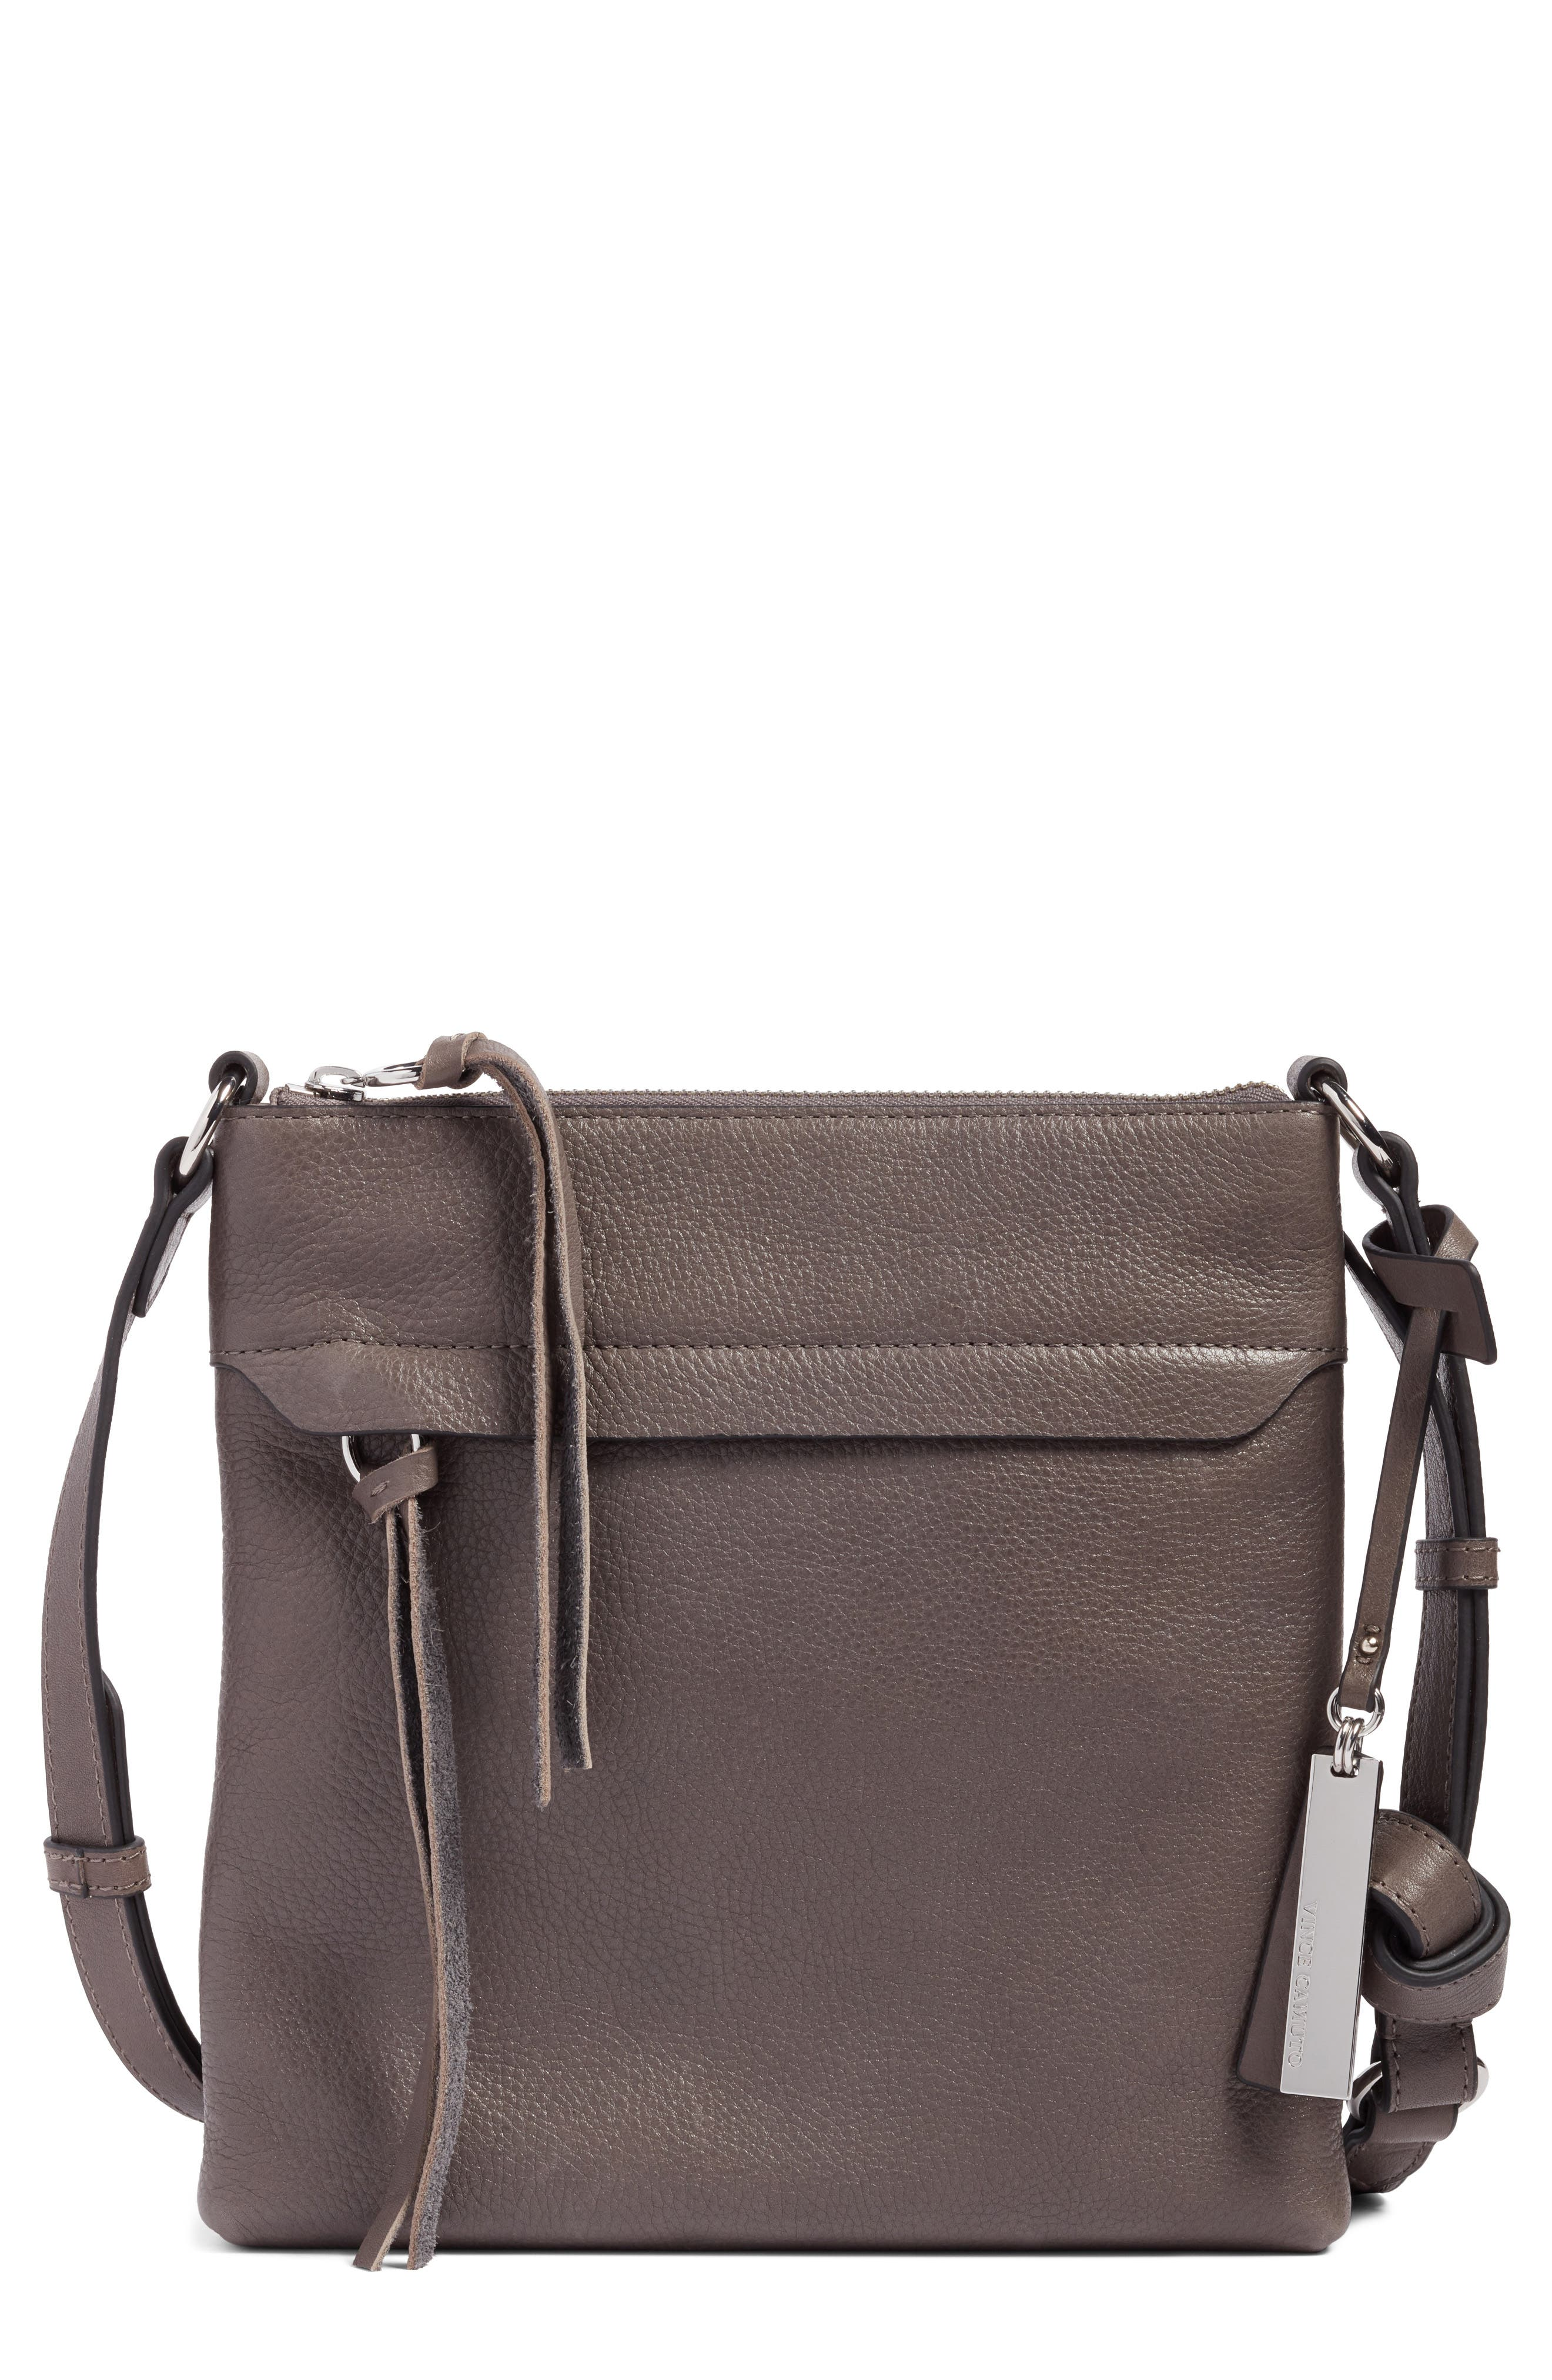 Vince Camuto Felax Leather Crossbody Bag (Nordstrom Exclusive)